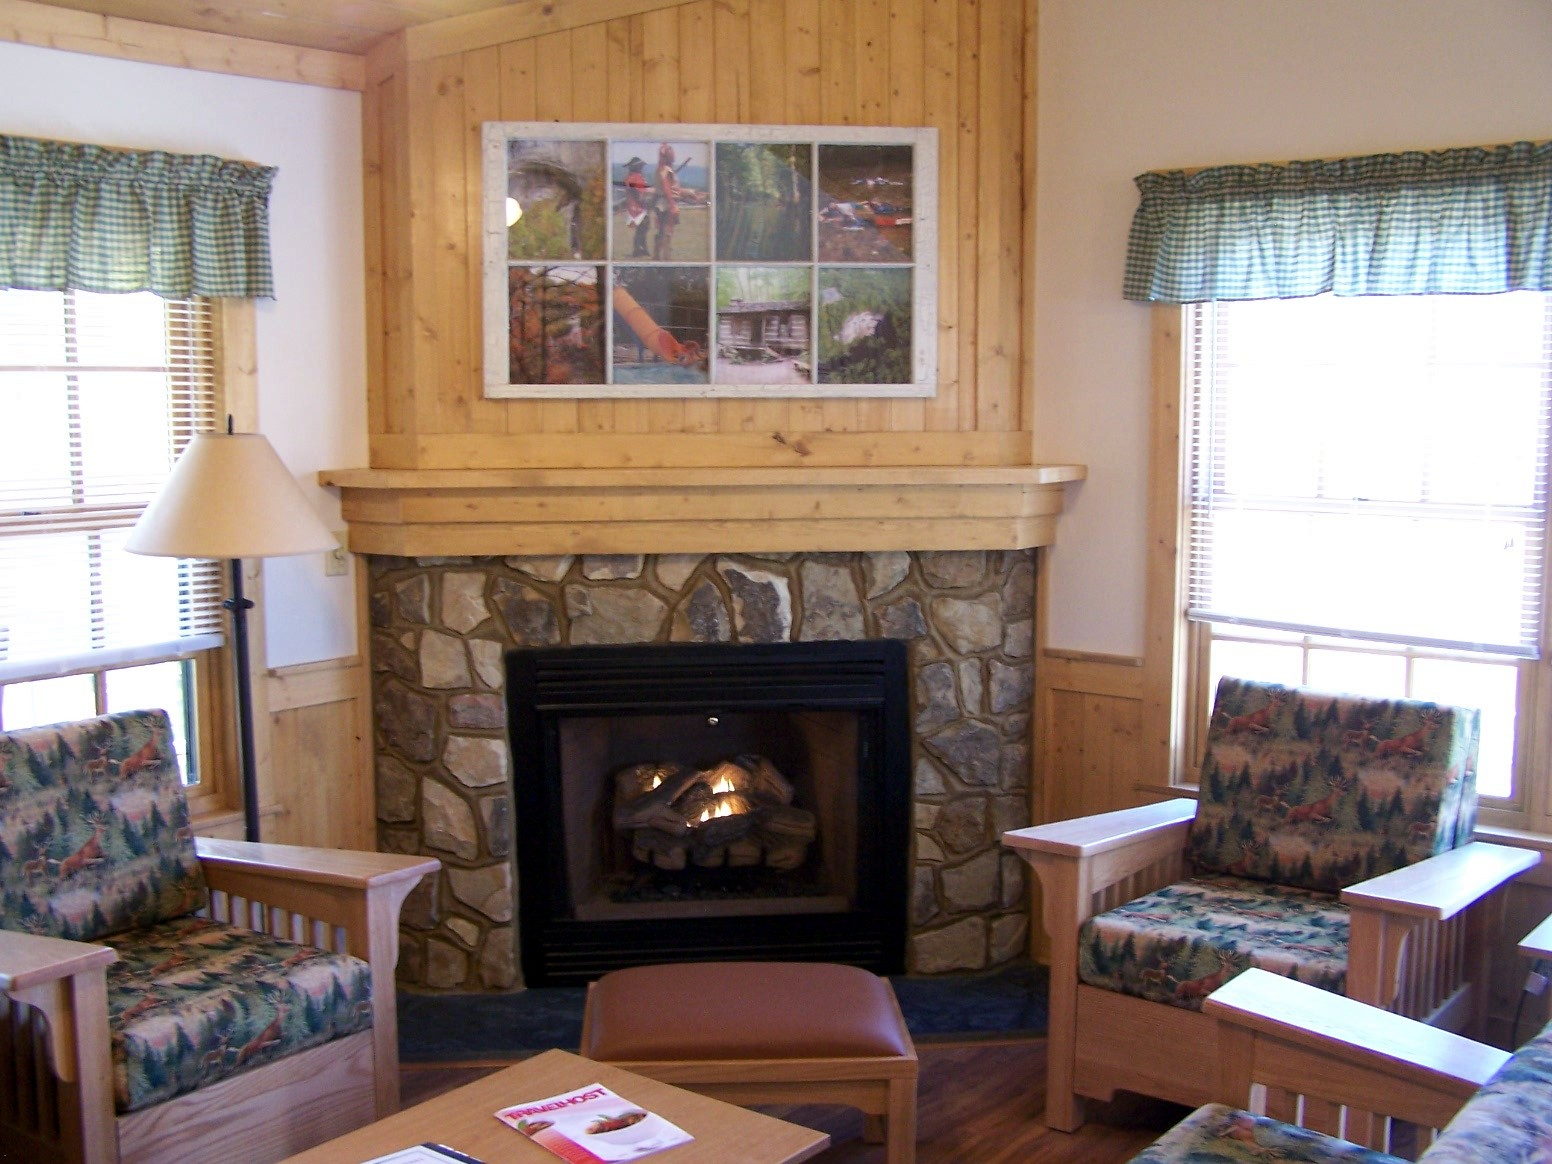 Wall Mounted Fireplaces – What Are The Benefits ?